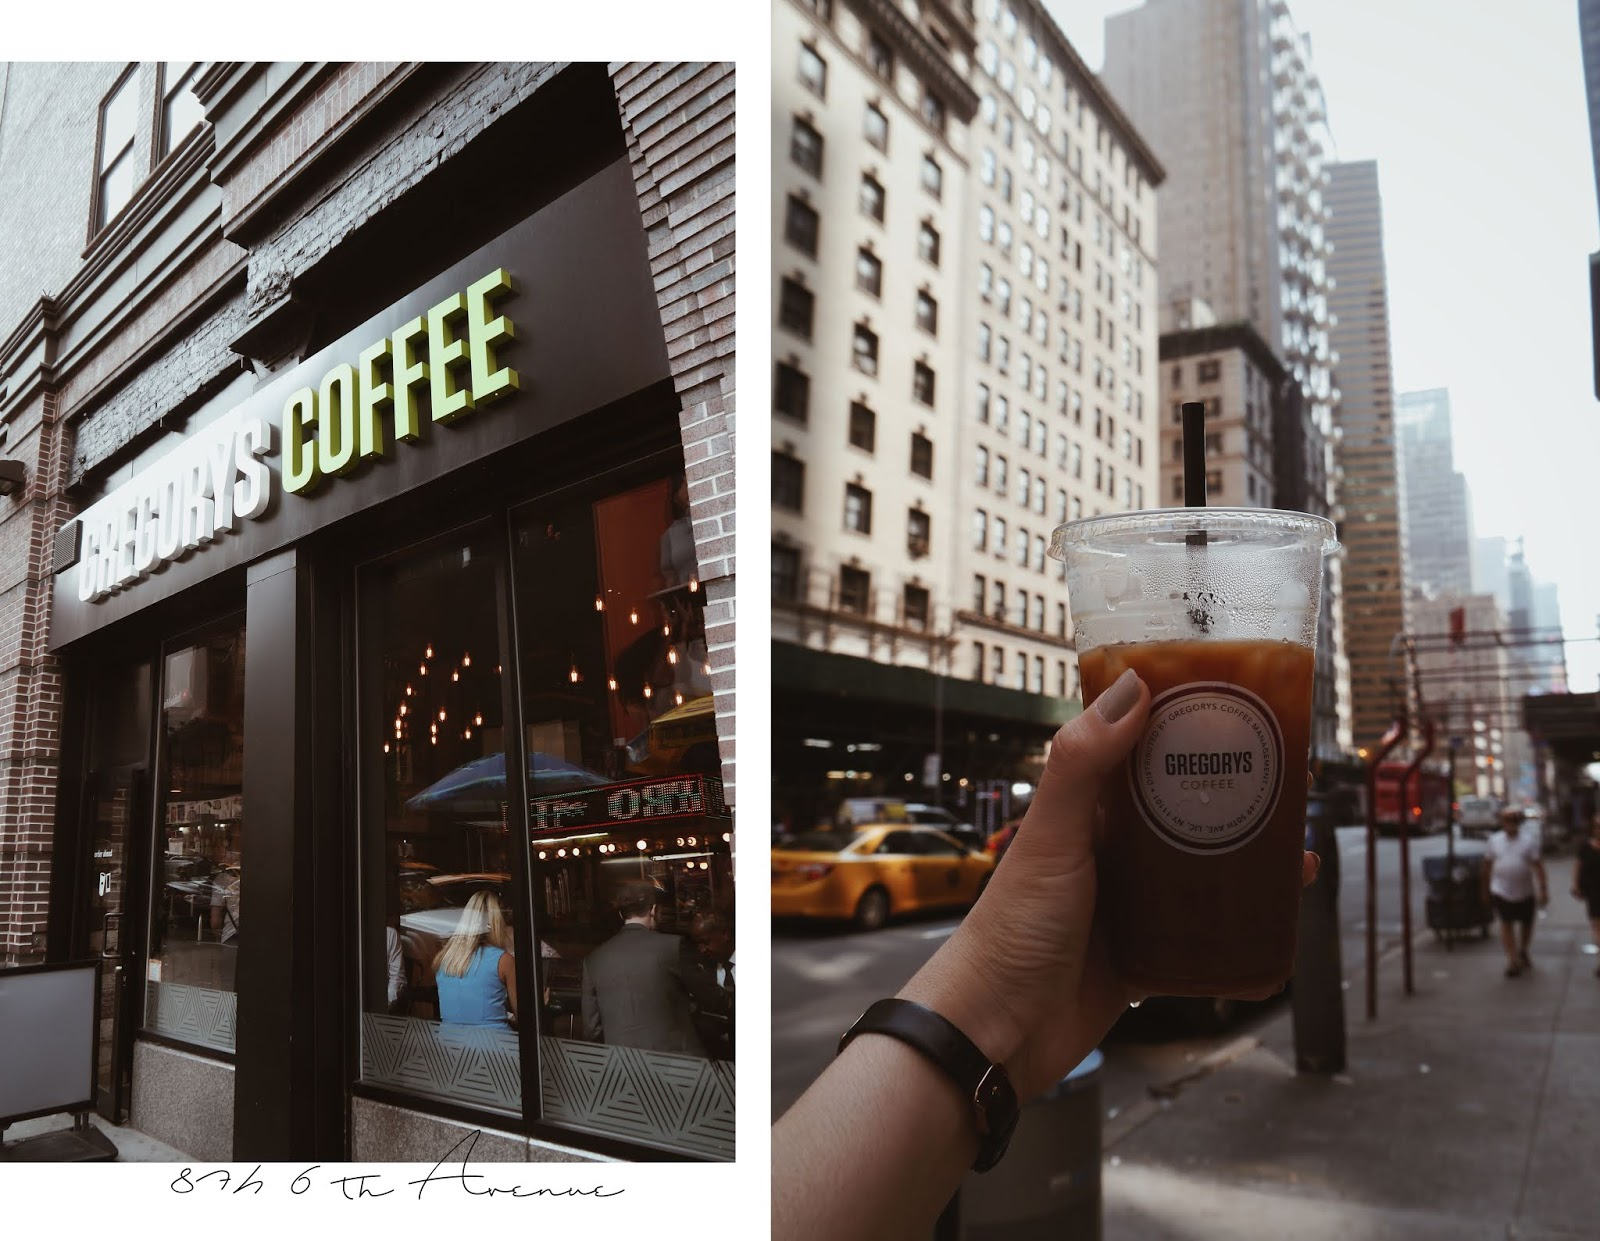 new york instagram places guide food spots instagrammable worthy gregorys coffee 2